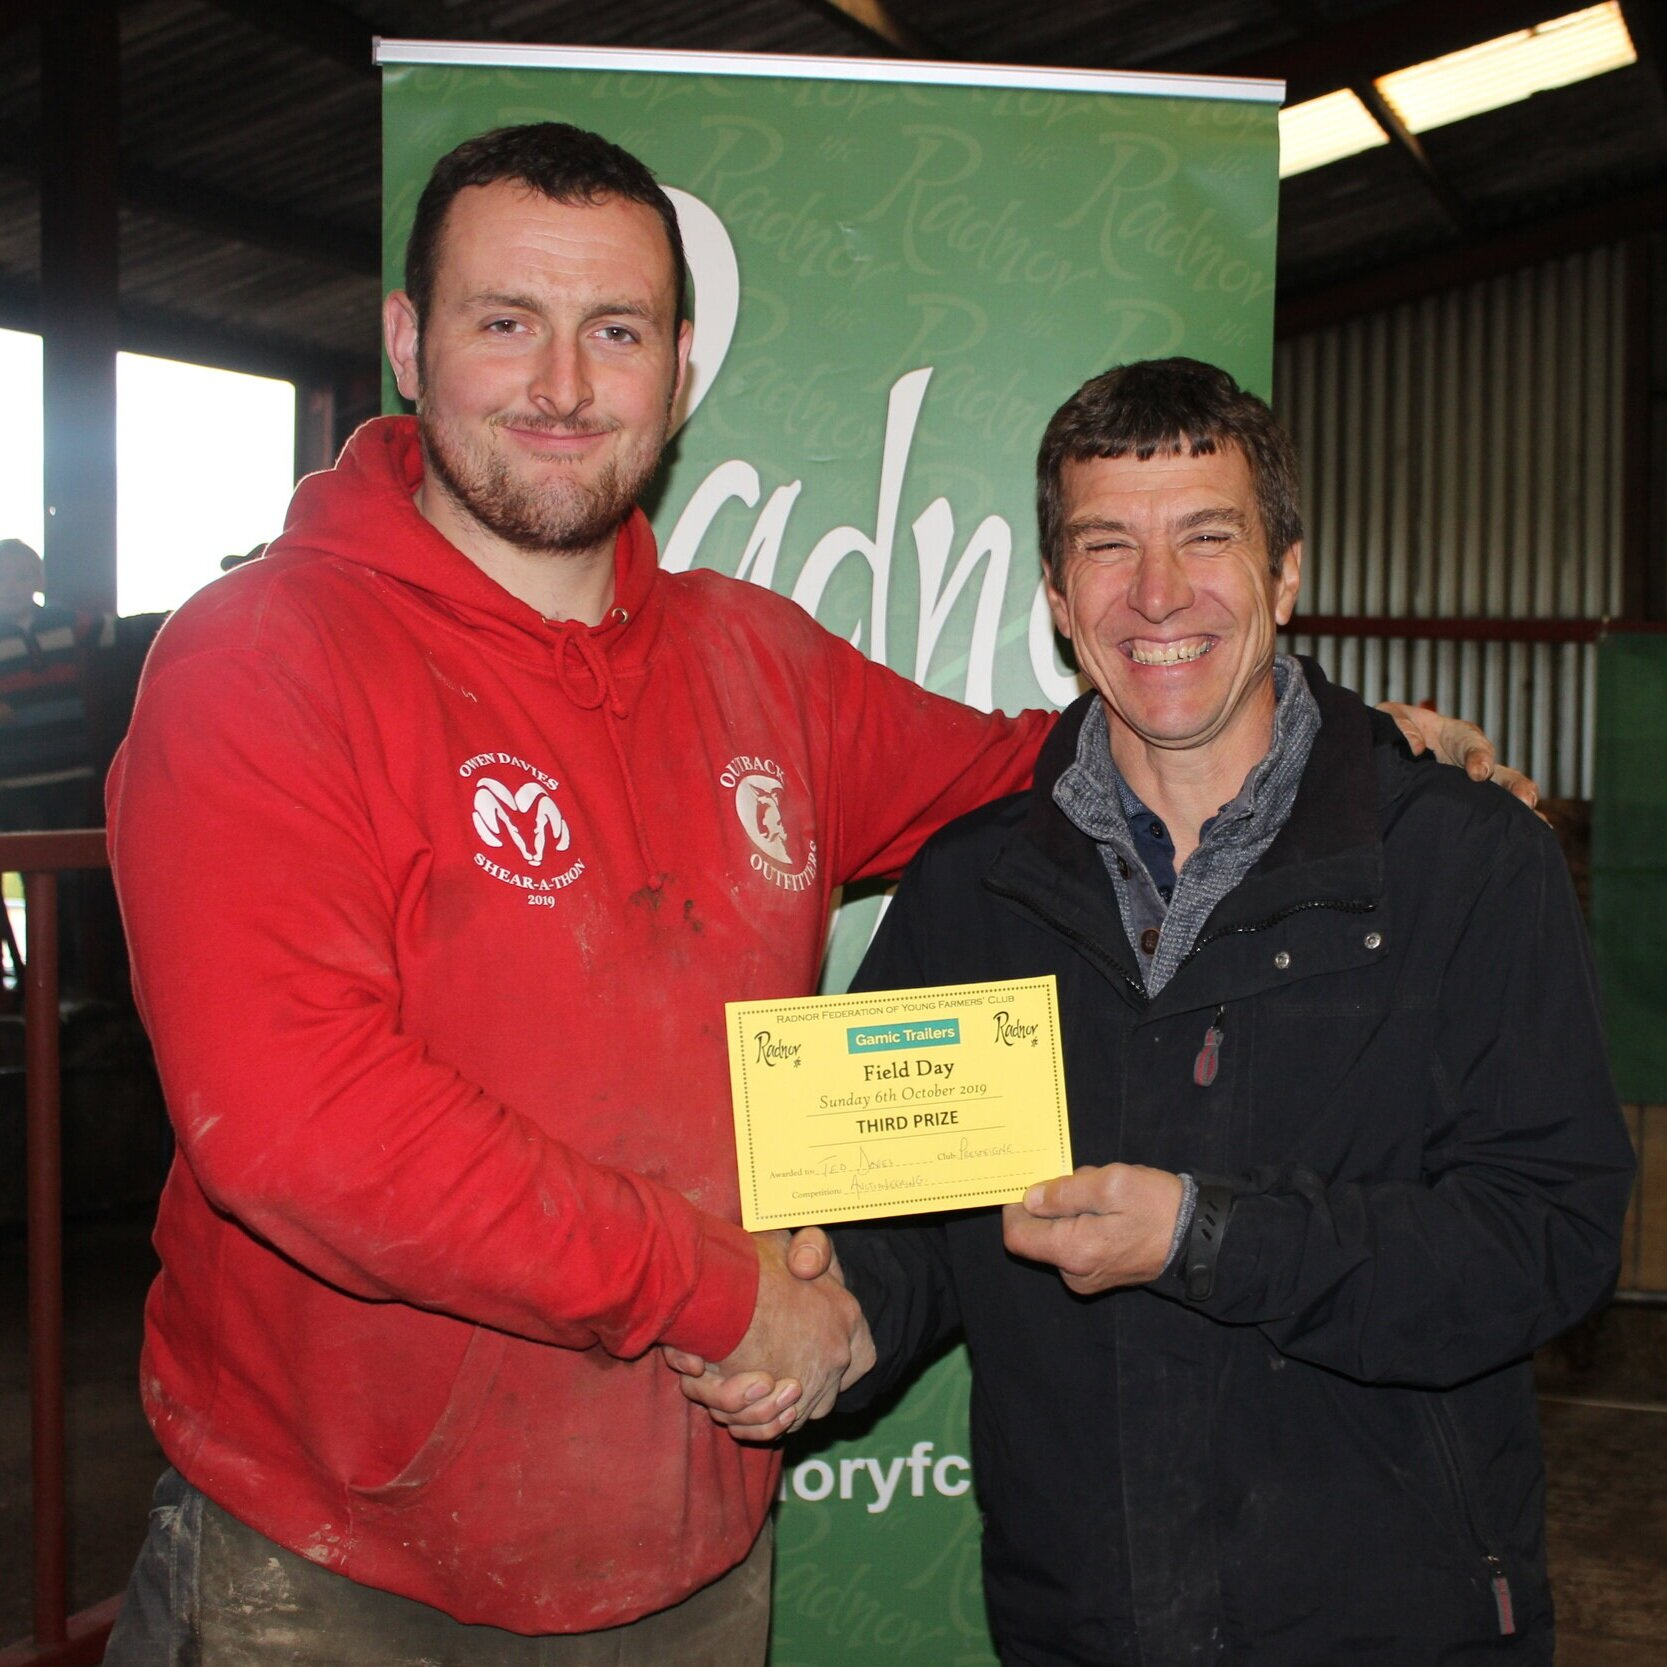 Ted Davies, Presteigne YFC - 3rd place in the Auctioneering competition with Mark Watson